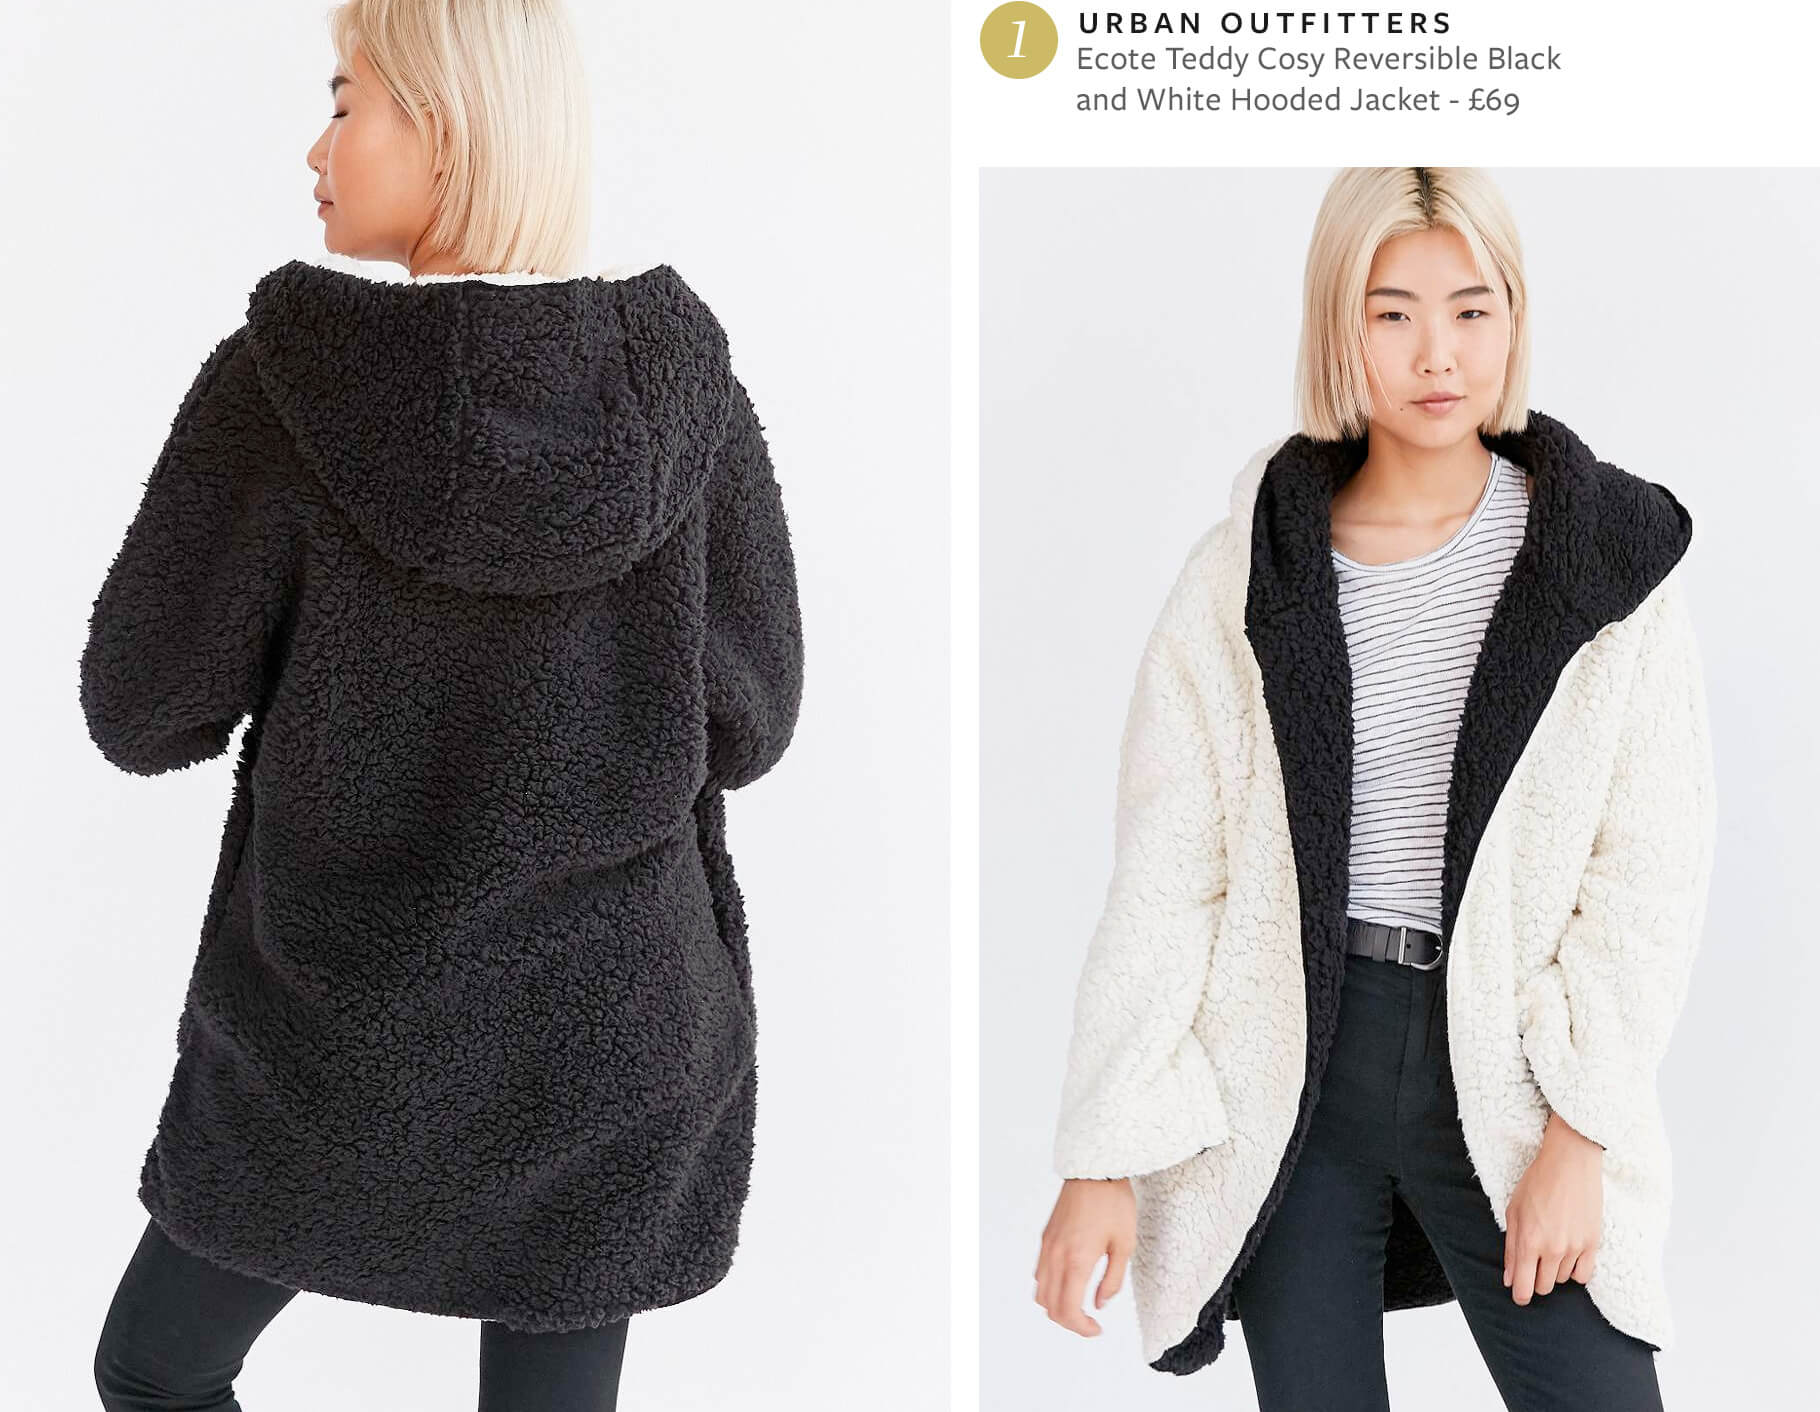 Ecote Teddy Cosy Reversible Black and White Hooded Jacket from Urban Outfitters